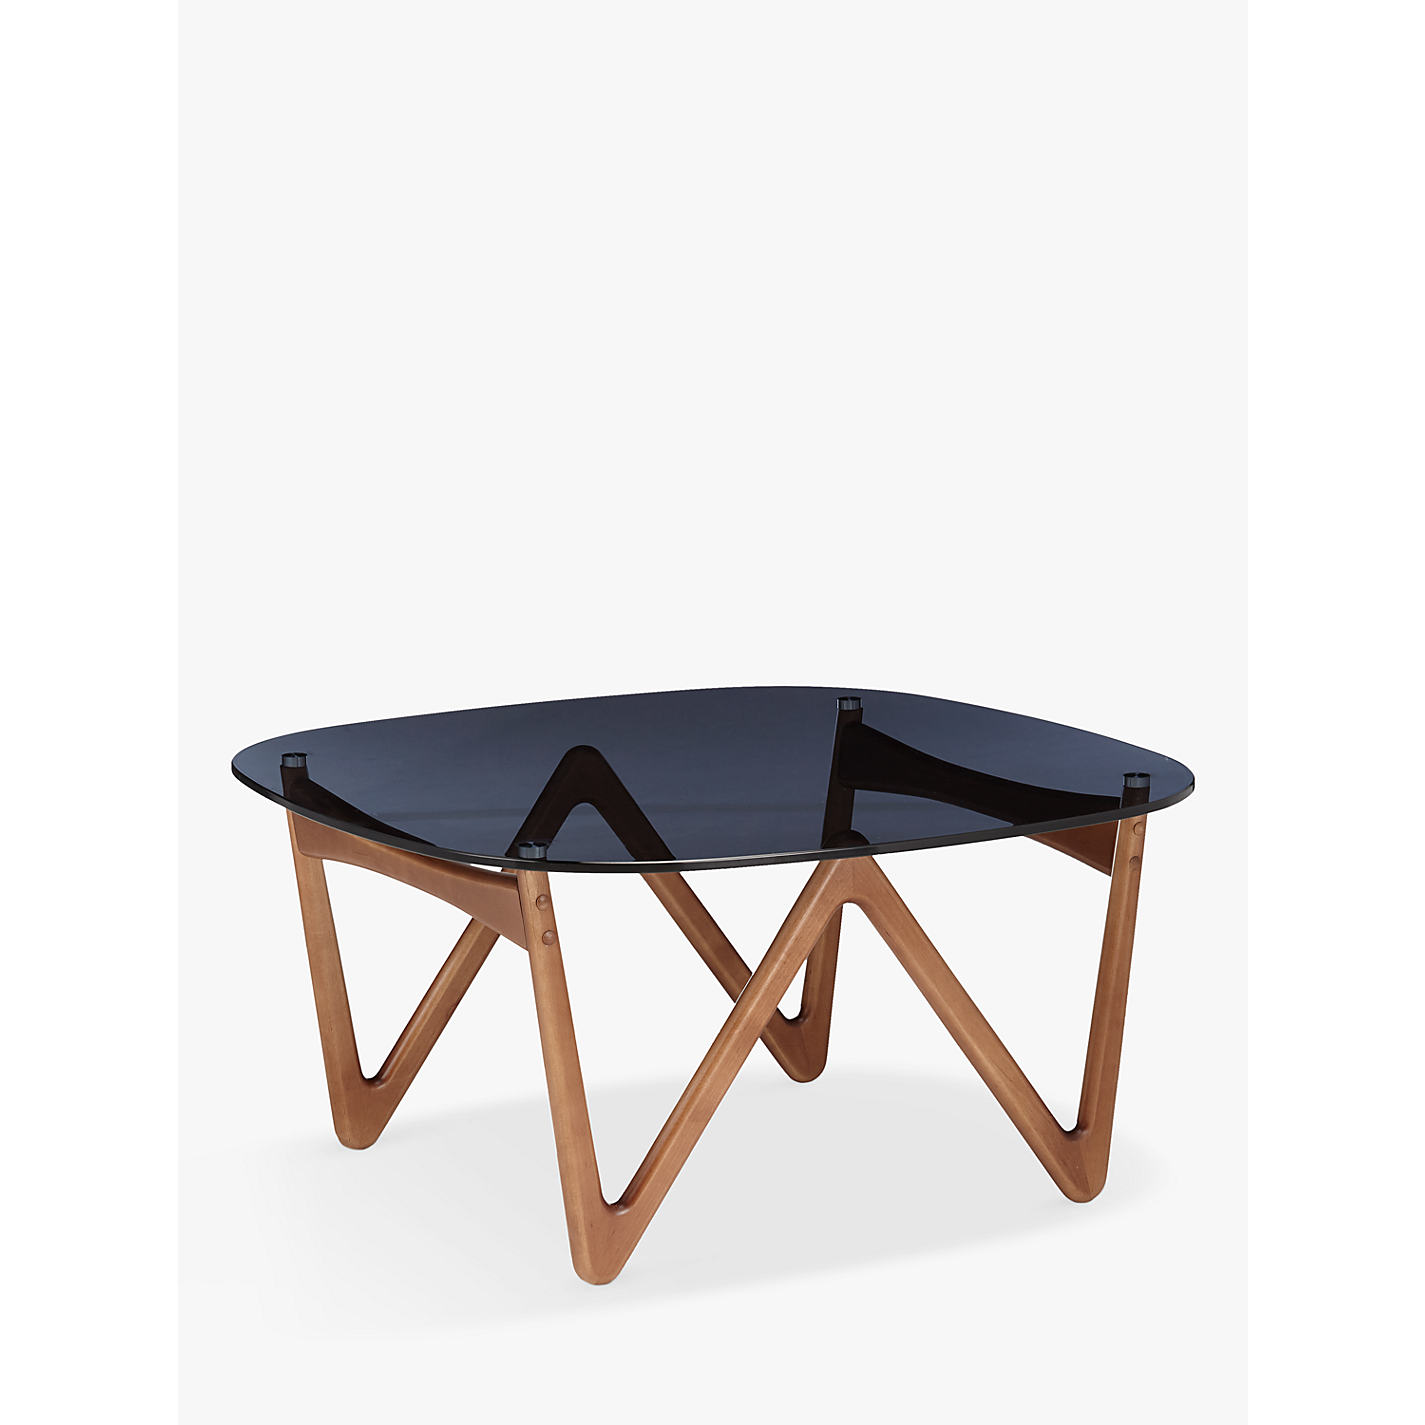 Buy John Lewis Soren Coffee Table Online At Johnlewis John Lewis Living Room Tables